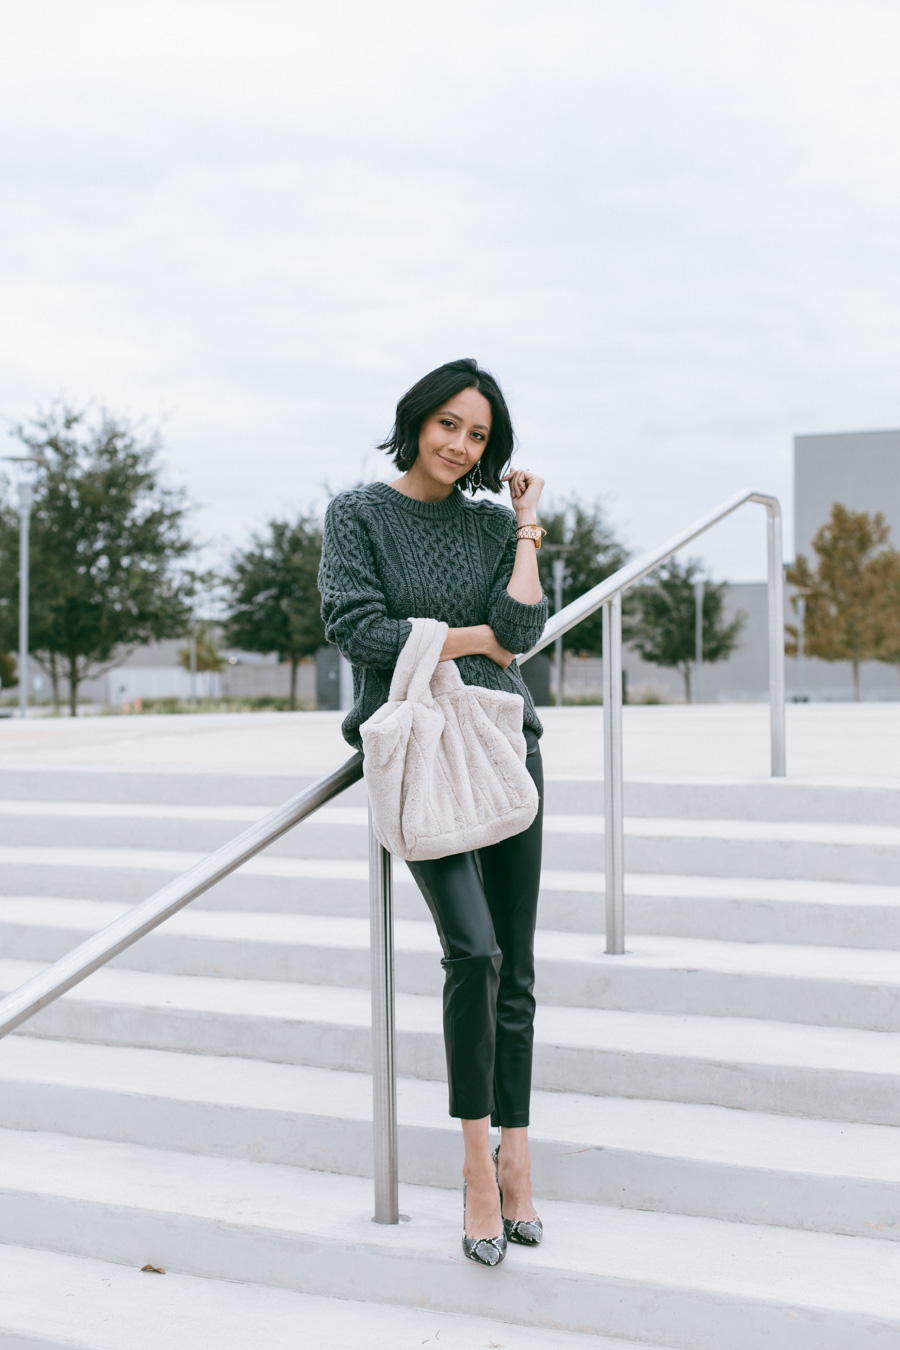 Lilly Beltran wearing faux leather pants with a cable knit sweater for an easy fall outfit.